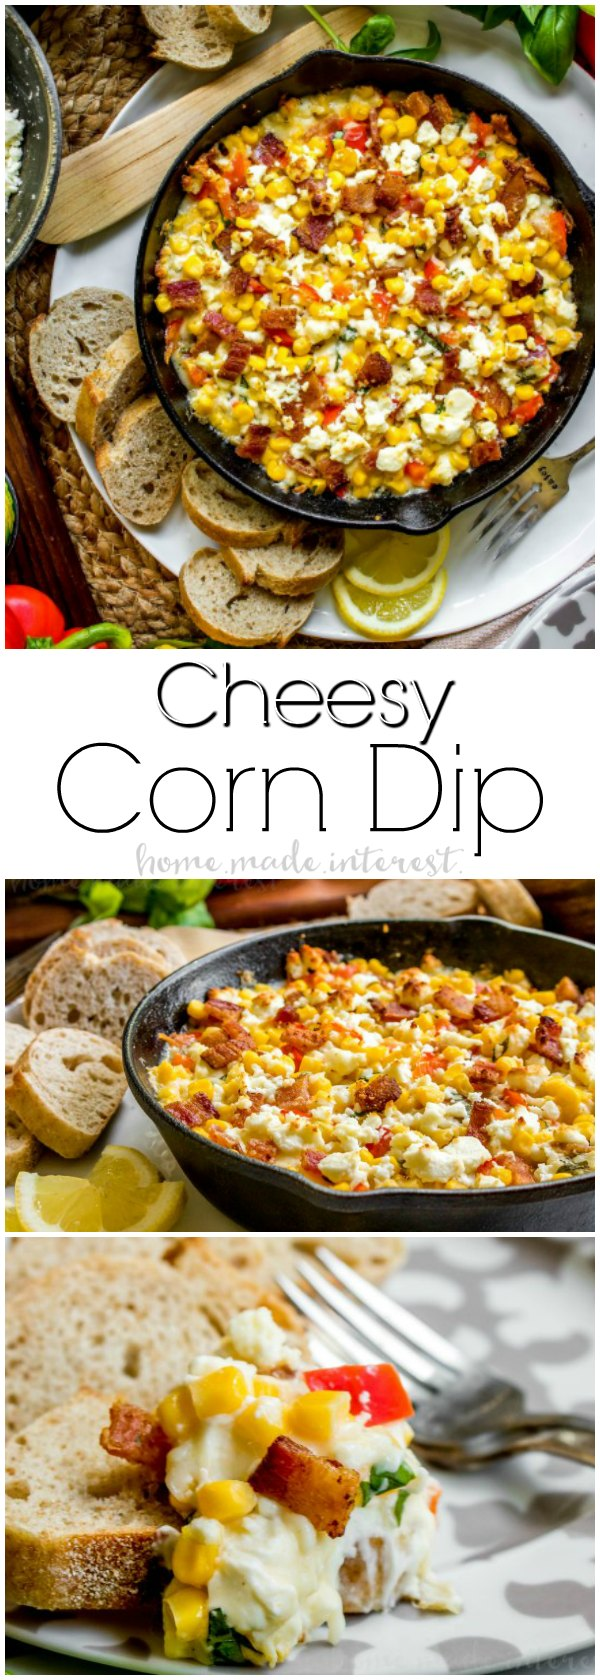 Cheesy Corn Dip | This Cheesy Corn Dip recipe is stuffed full of bacon, three types of cheeses, and sweet corn. It is a hot corn dip recipe that makes great party food! Make this easy appetizer for all of your game day parties. Enjoy the football game with hot corn dip and your favorite crackers!